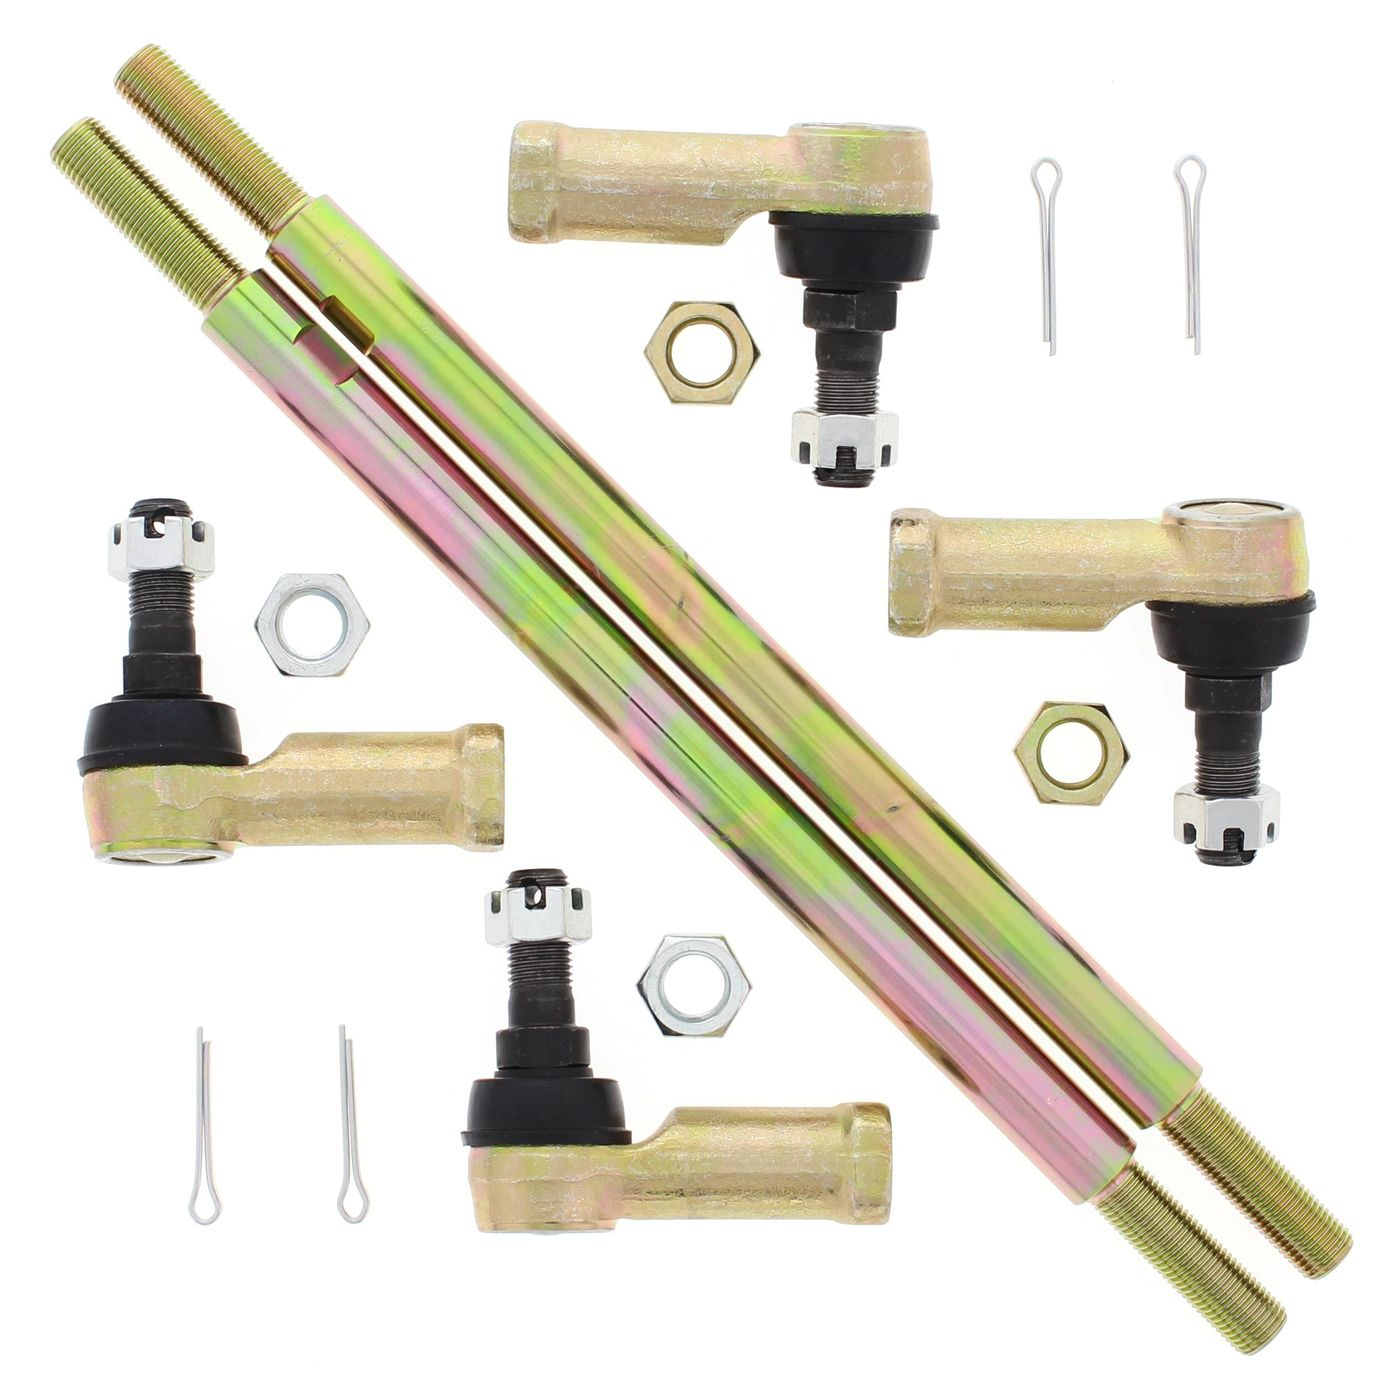 Wrp Tie Rod Kits - WRP521029 image